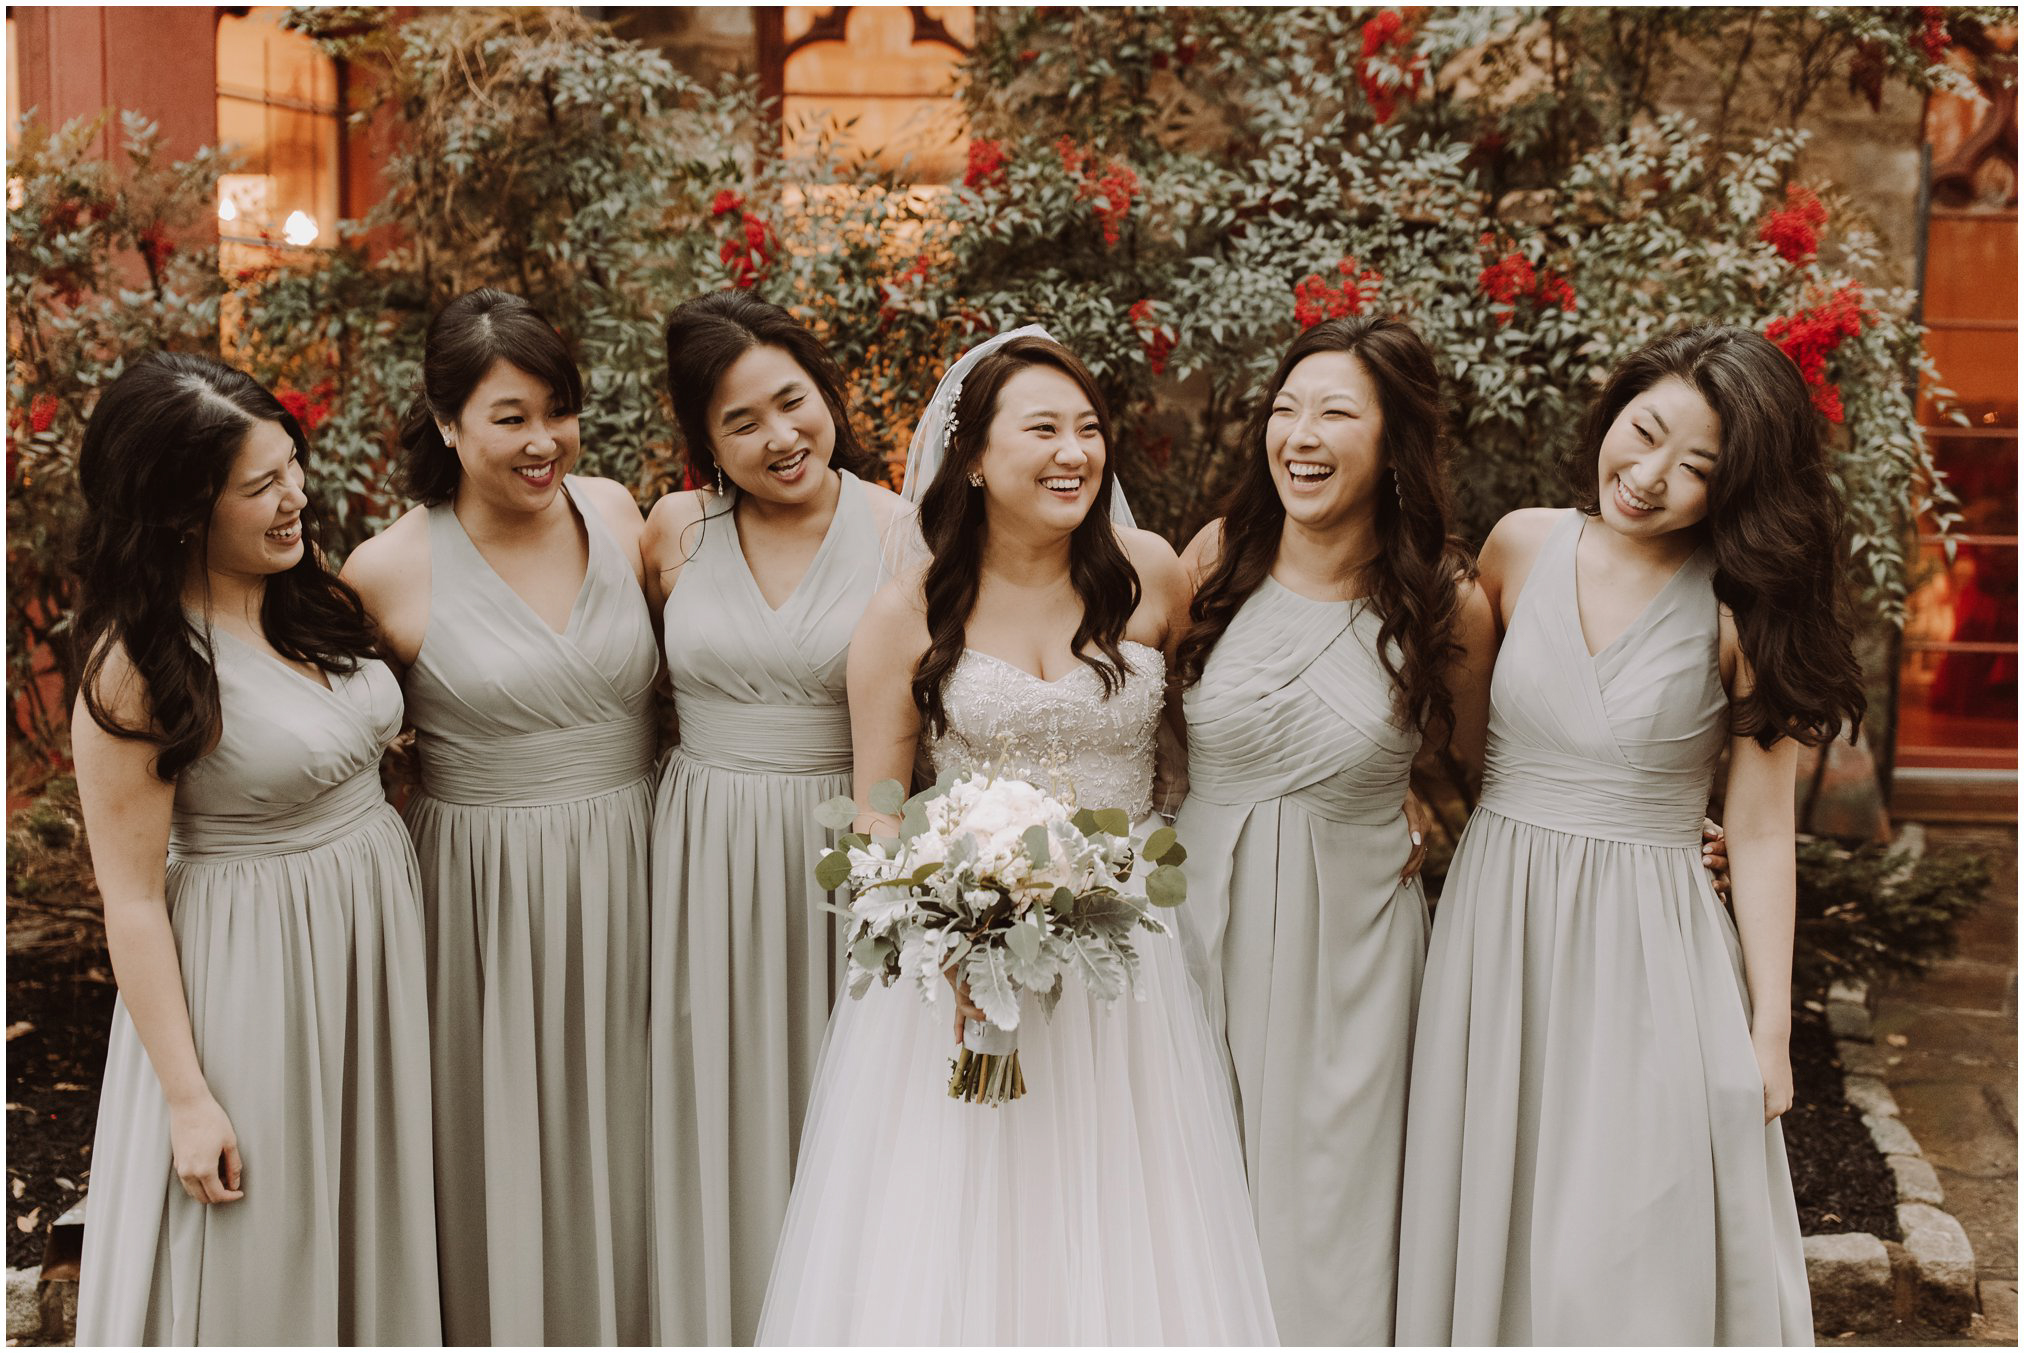 Bridesmaid Pictures at Cloisters Castle